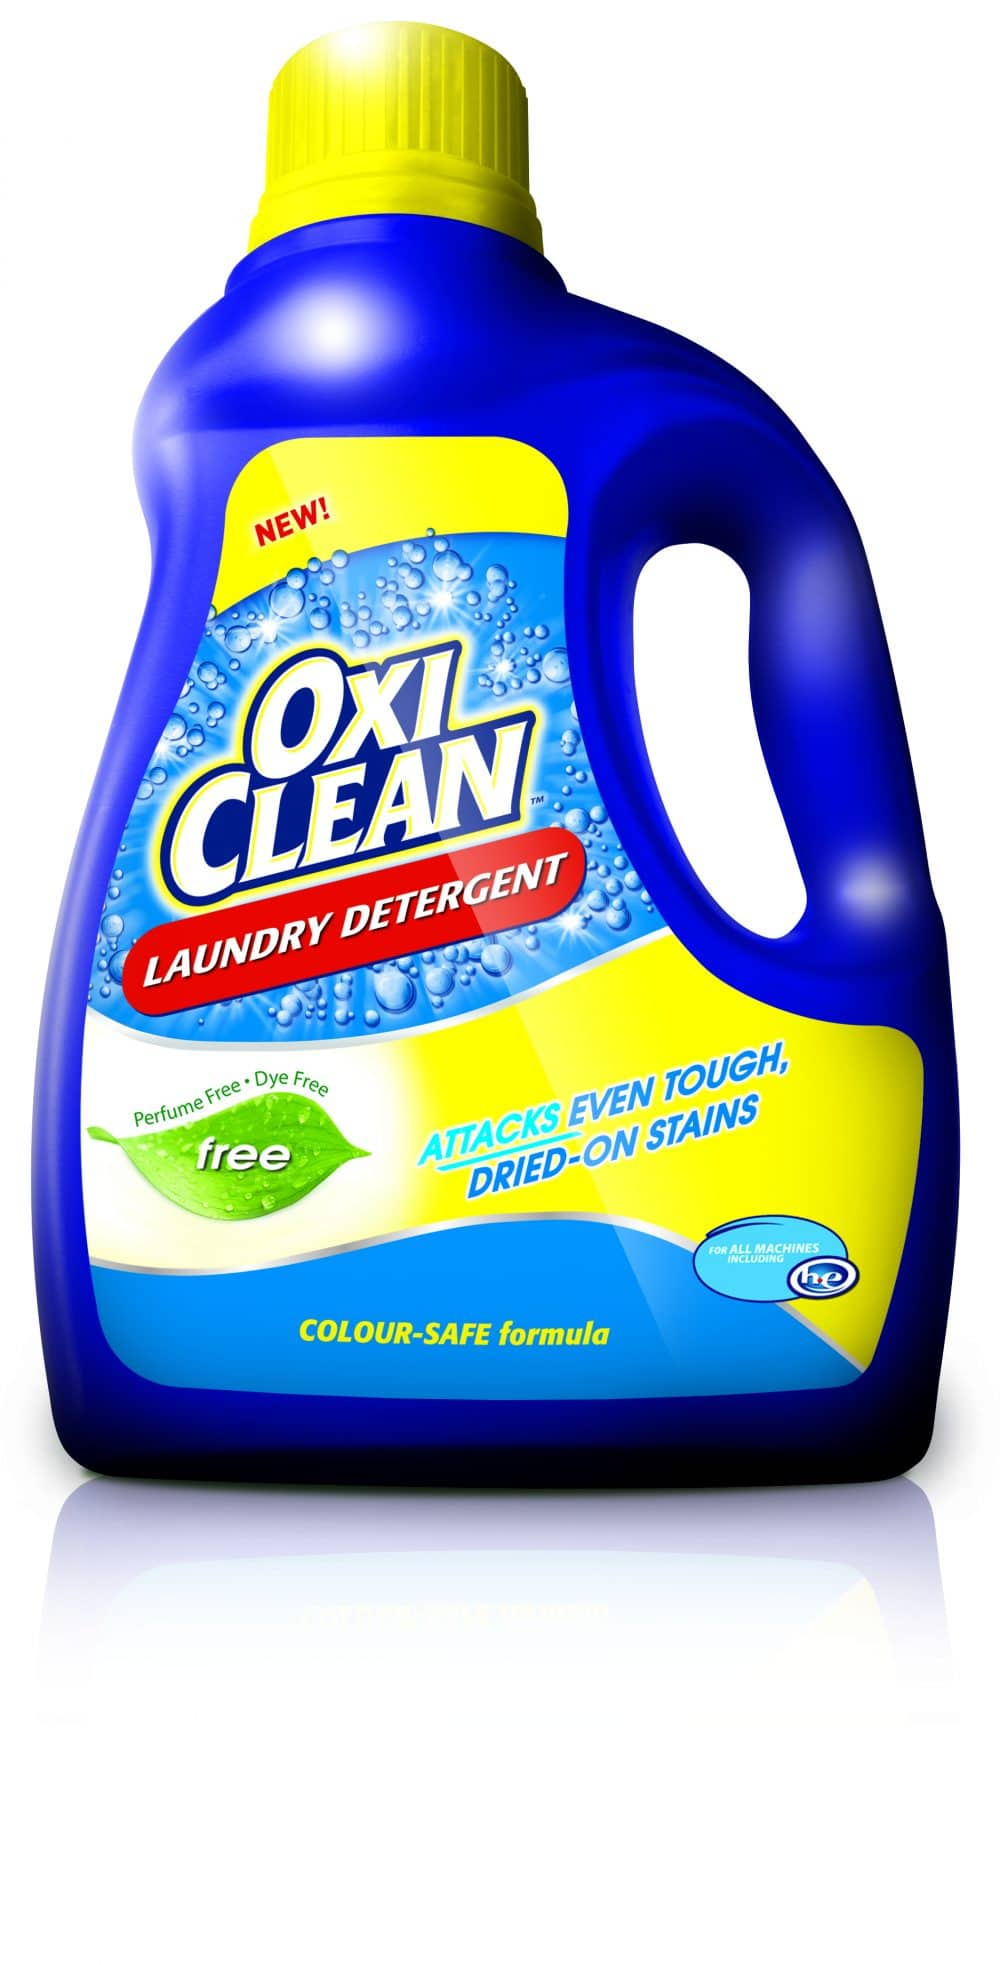 Take A Load Off with OxiClean™